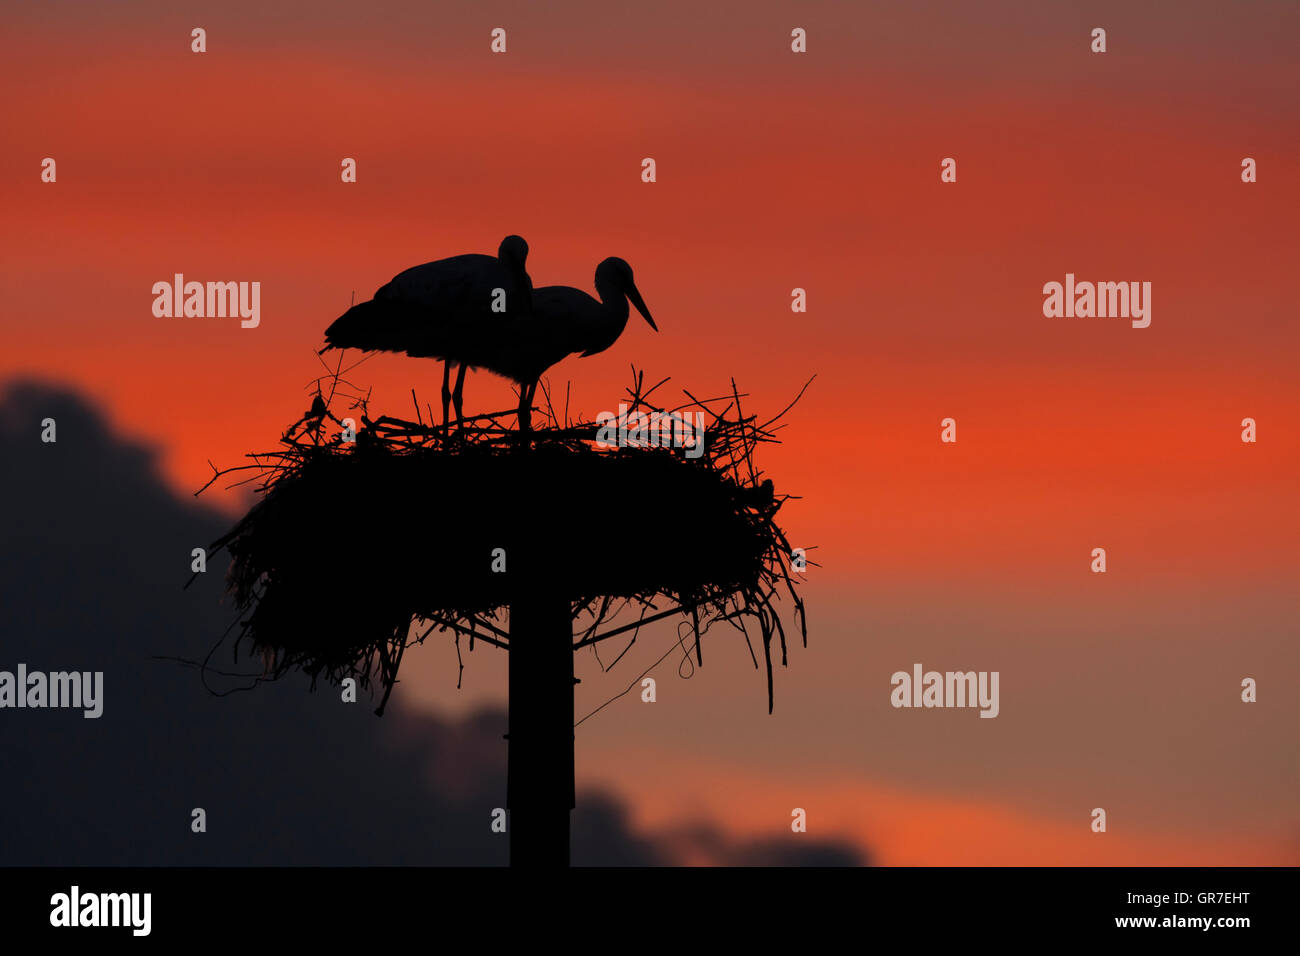 White Stork (Ciconia ciconia) adult pair on artificial nesting poles at sunset, Caceres province, Extremadura, Spain Stock Photo